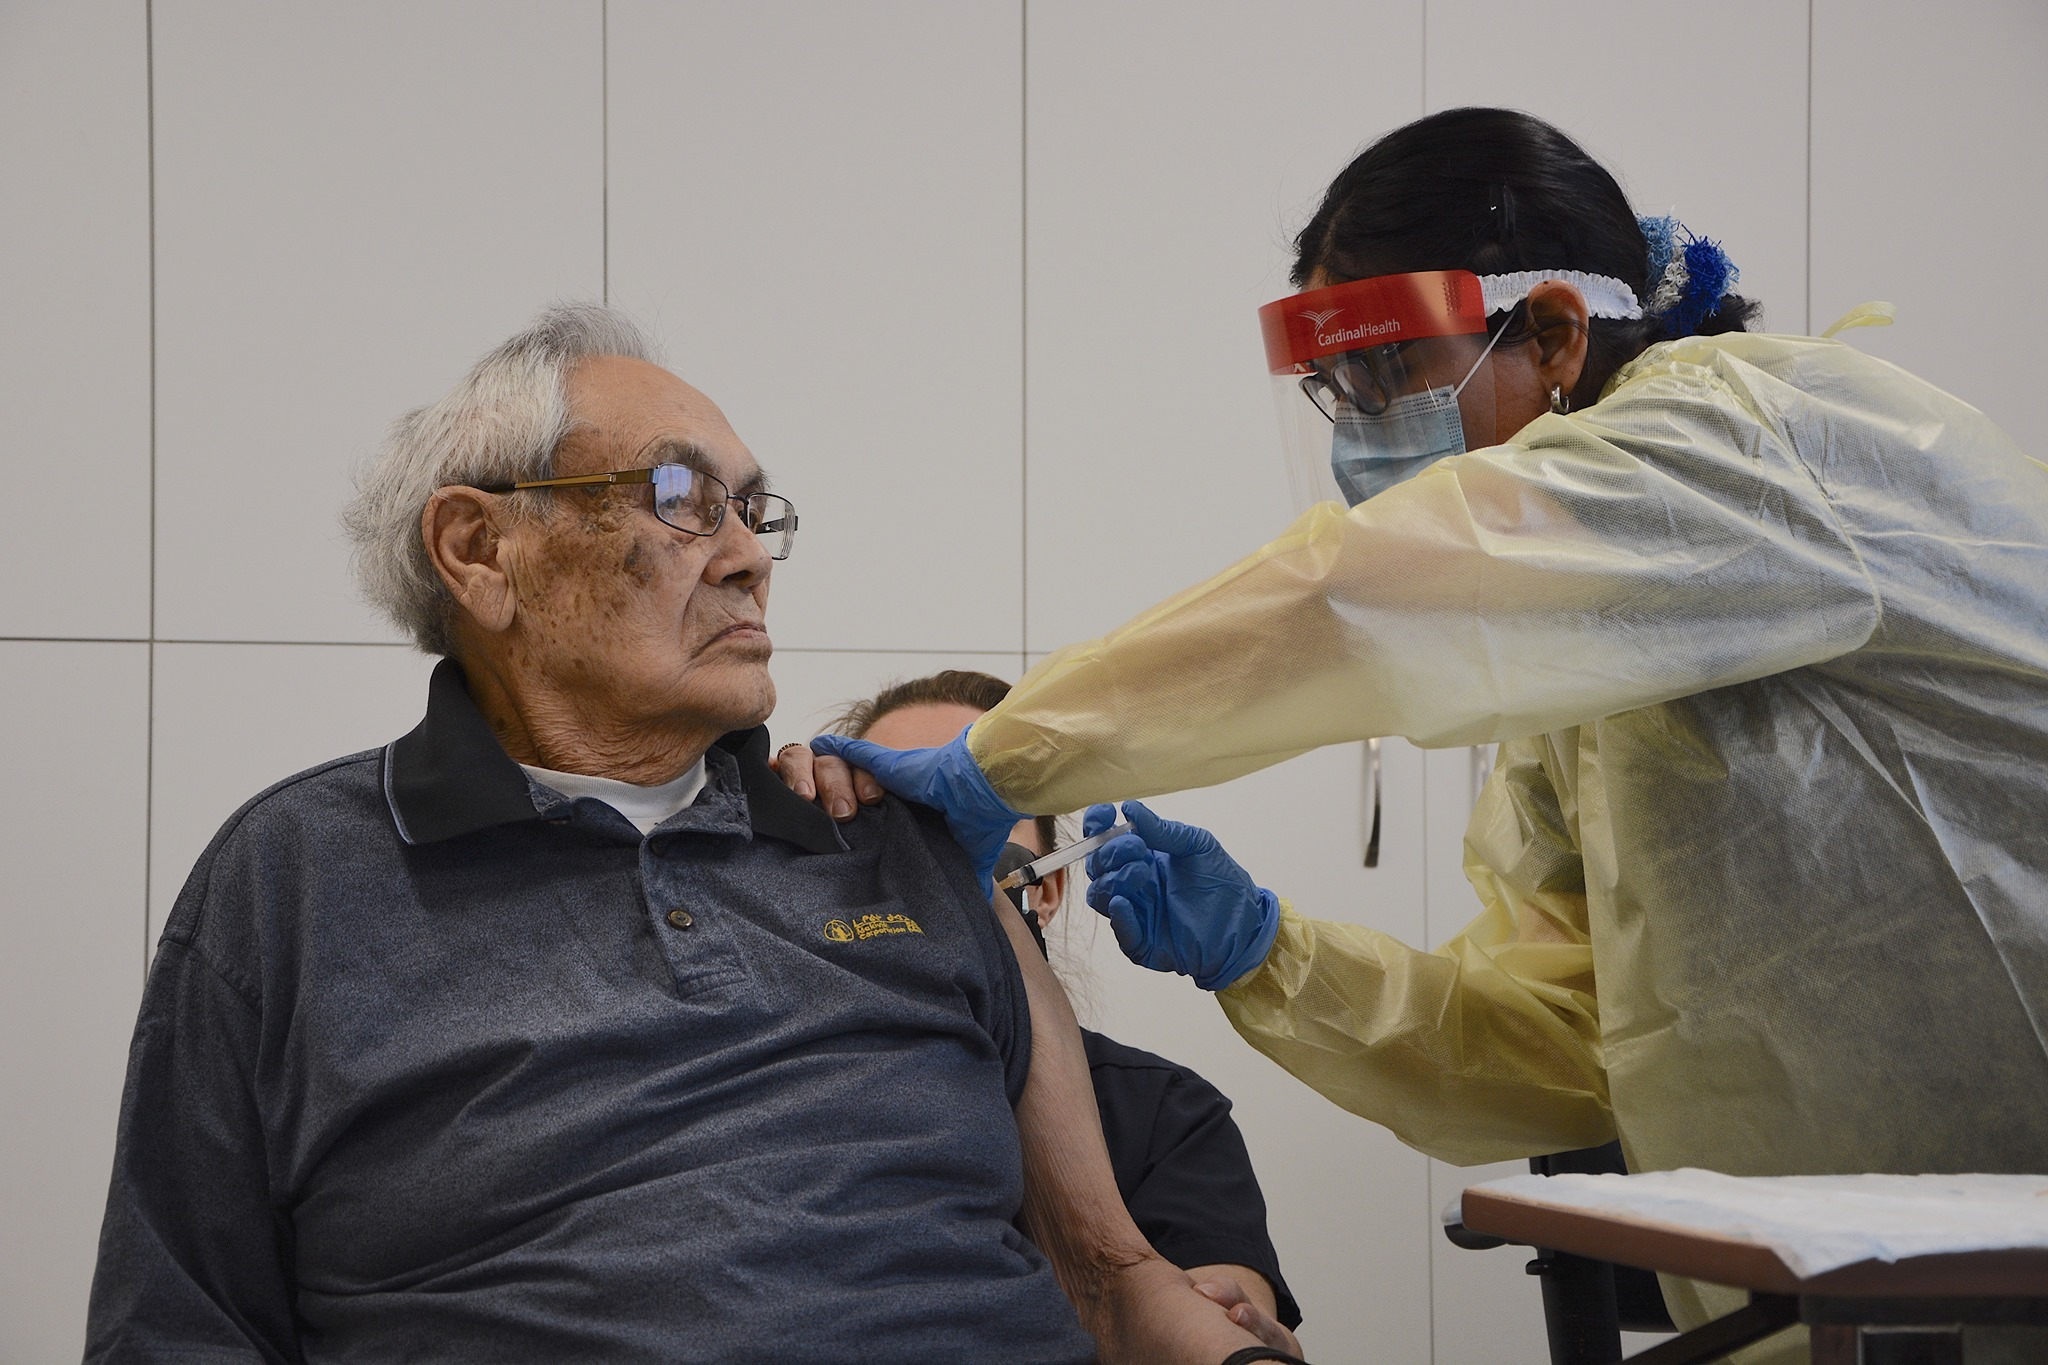 Johnny Watt, a resident of Tusajiapik Elders' Home in Kuujjuaq, was the first person in Nunavik to be vaccinated against COVID-19 on Sunday, Jan. 17. Watt has a history with vaccines: he helped deliver the measles vaccines to camps by dogsled team in the early 1950s. Nunavik received its first batch of 1,000 doses of Moderna's vaccine this past weekend. Immunization will begin in the region's other communities this week. (Photo courtesy of the NRBHSS)